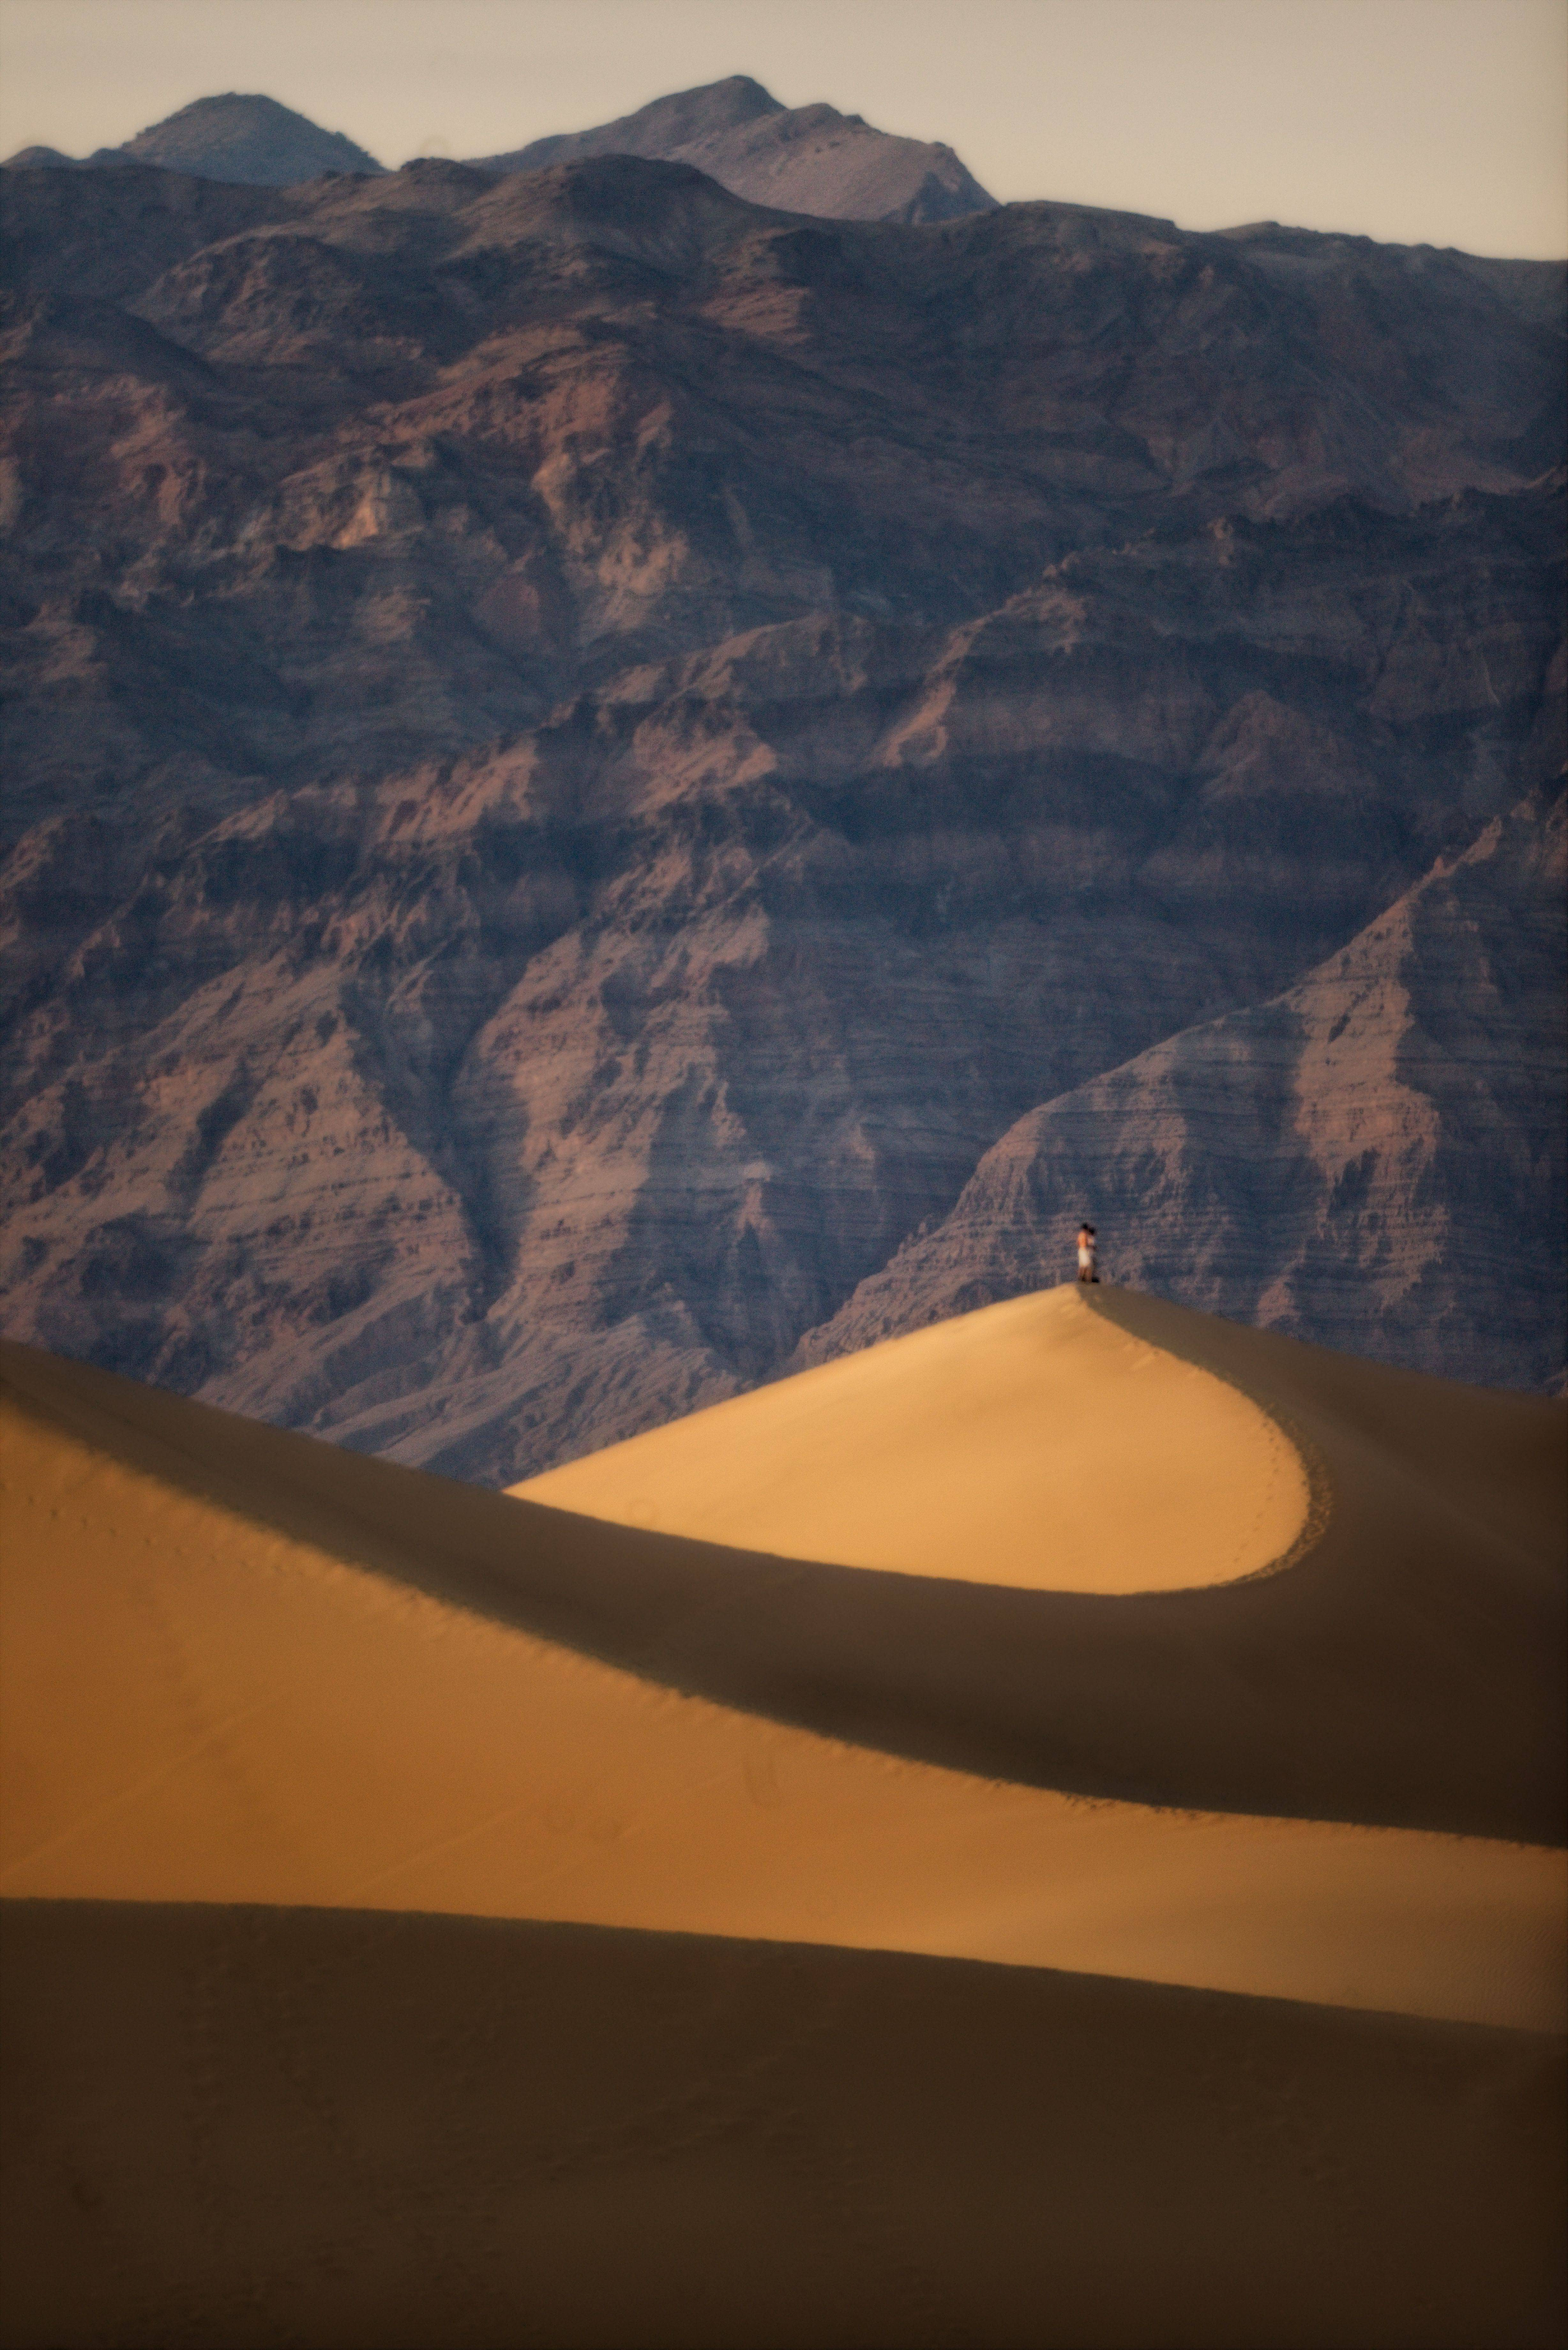 Grand sand dunes at the Mesquite dunes in Death Valley